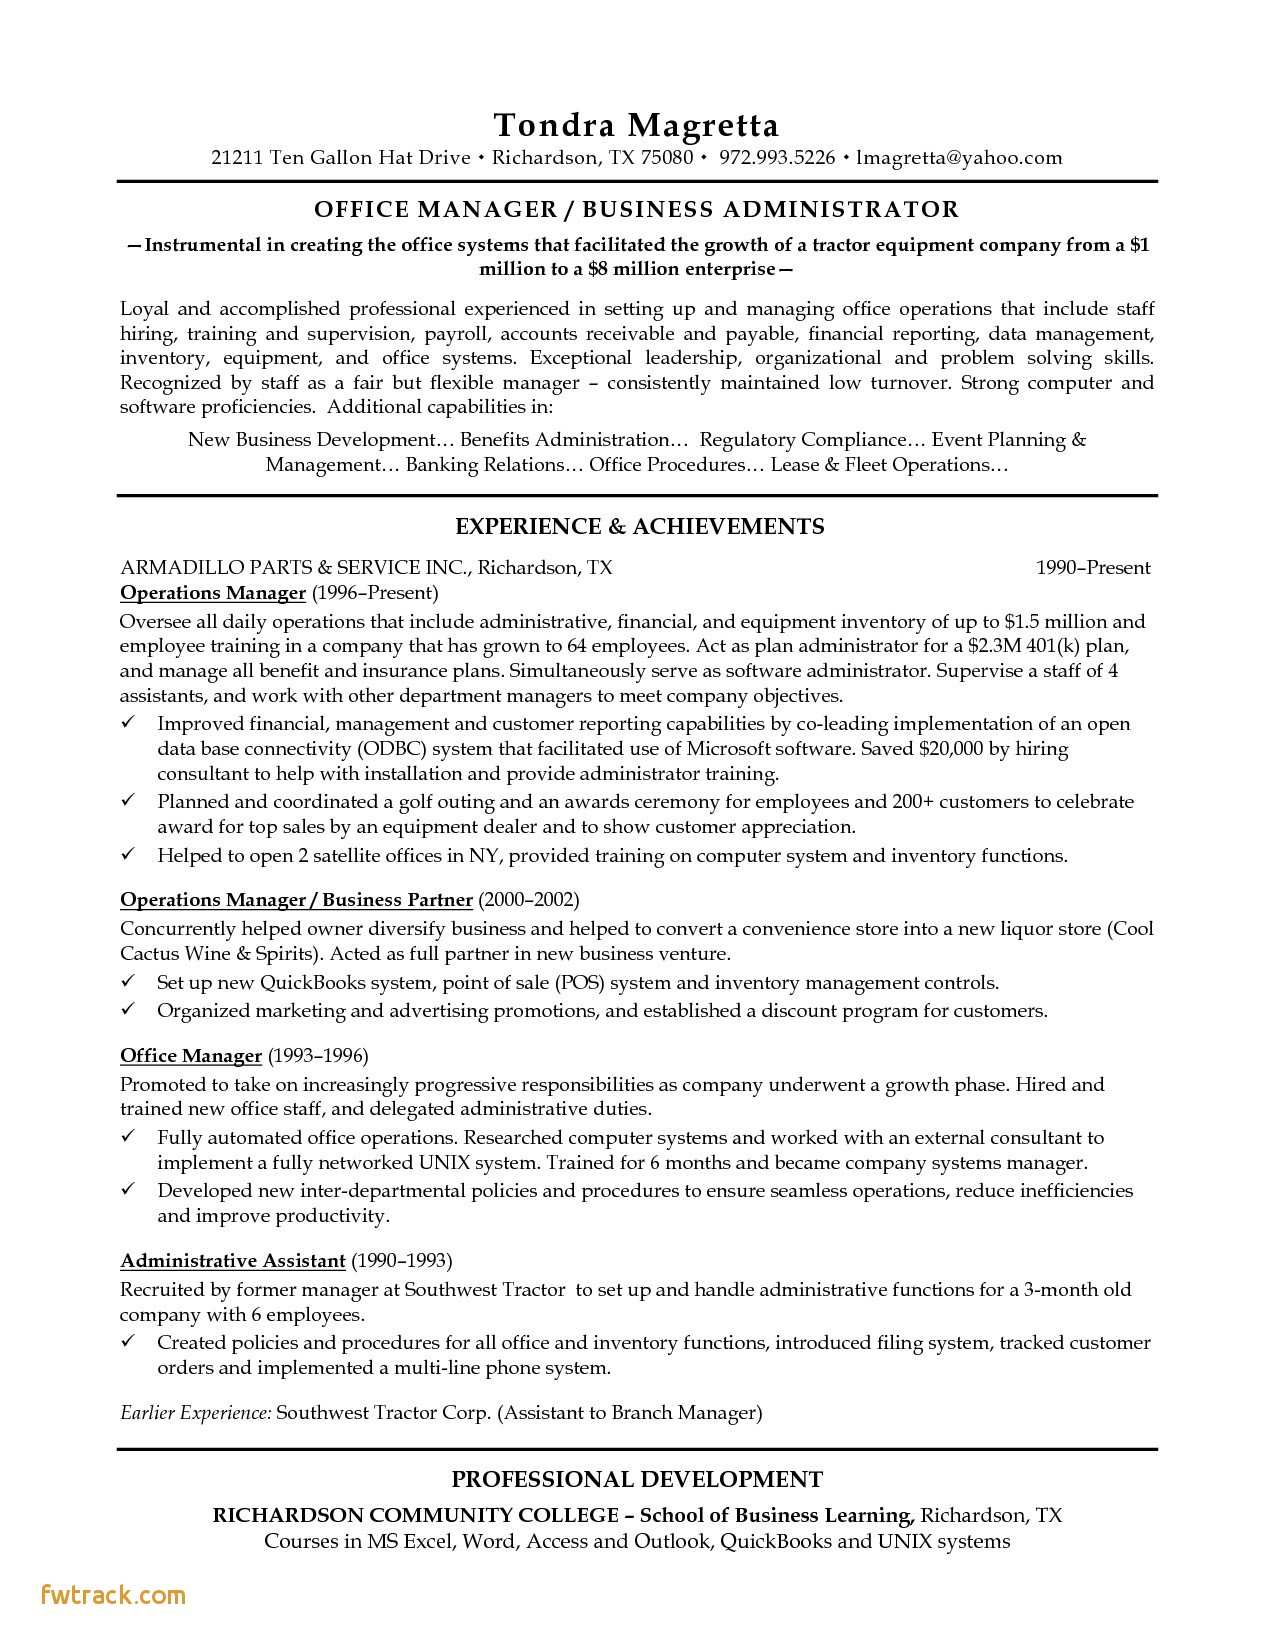 Office Manager Job Description for Resume - Resume Examples for Retail Fwtrack Fwtrack